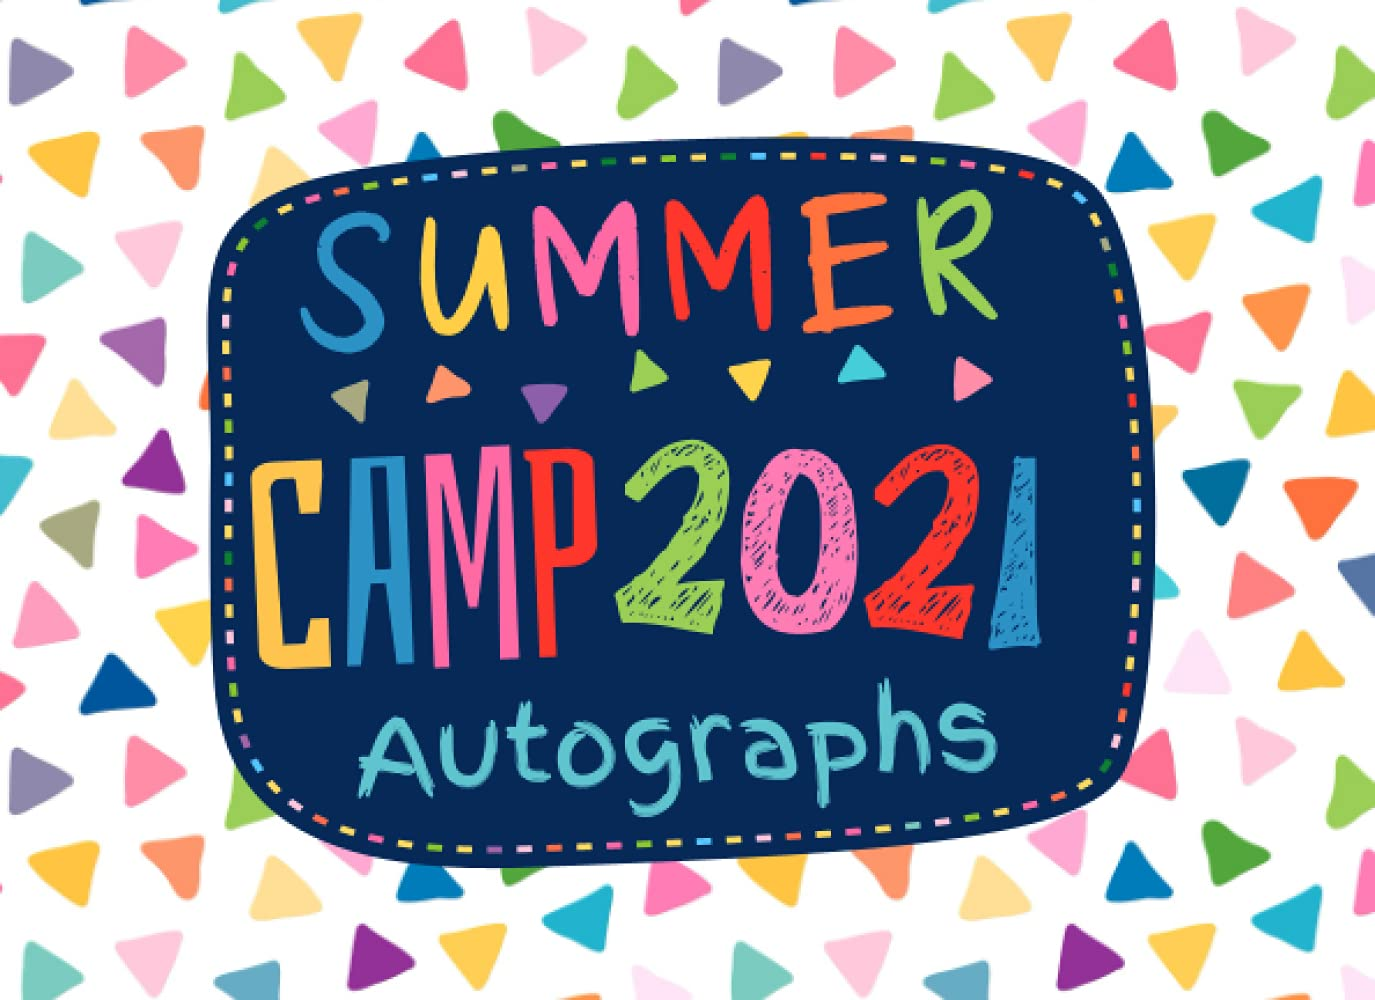 61gpyEsTGvS - Summer Camp 2021 Autographs: Cute Keepsake Memory Autograph Book for Kids to Collect Signatures and Special Messages from Friends - Blank Unlined Pages